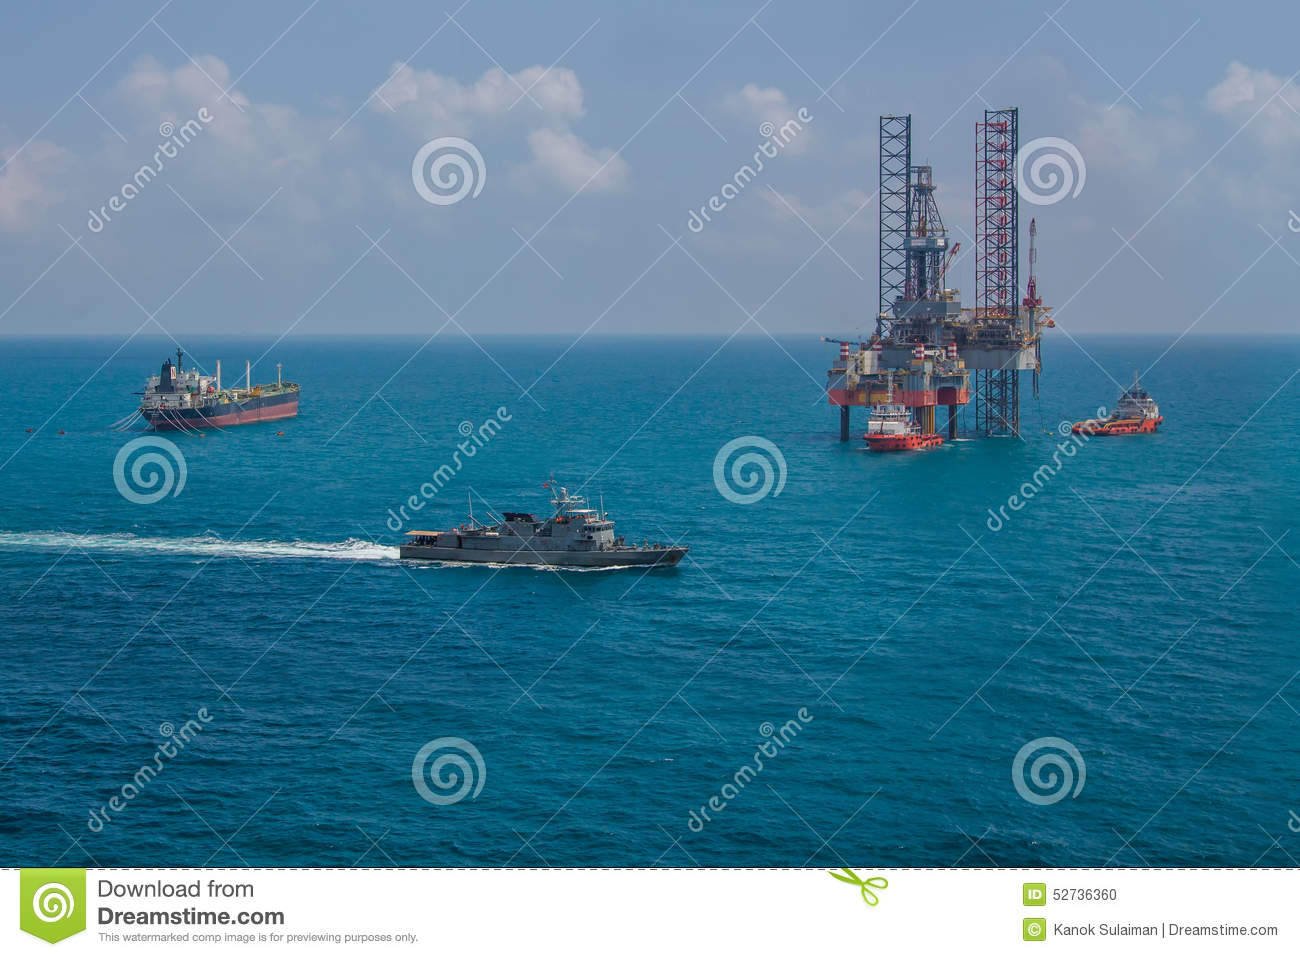 offshore oil drilling thesis Offshore drilling is under serious pressure as low oil prices put oil projects on hold the industry itself is oversupplied with rigs, which obviously does not.